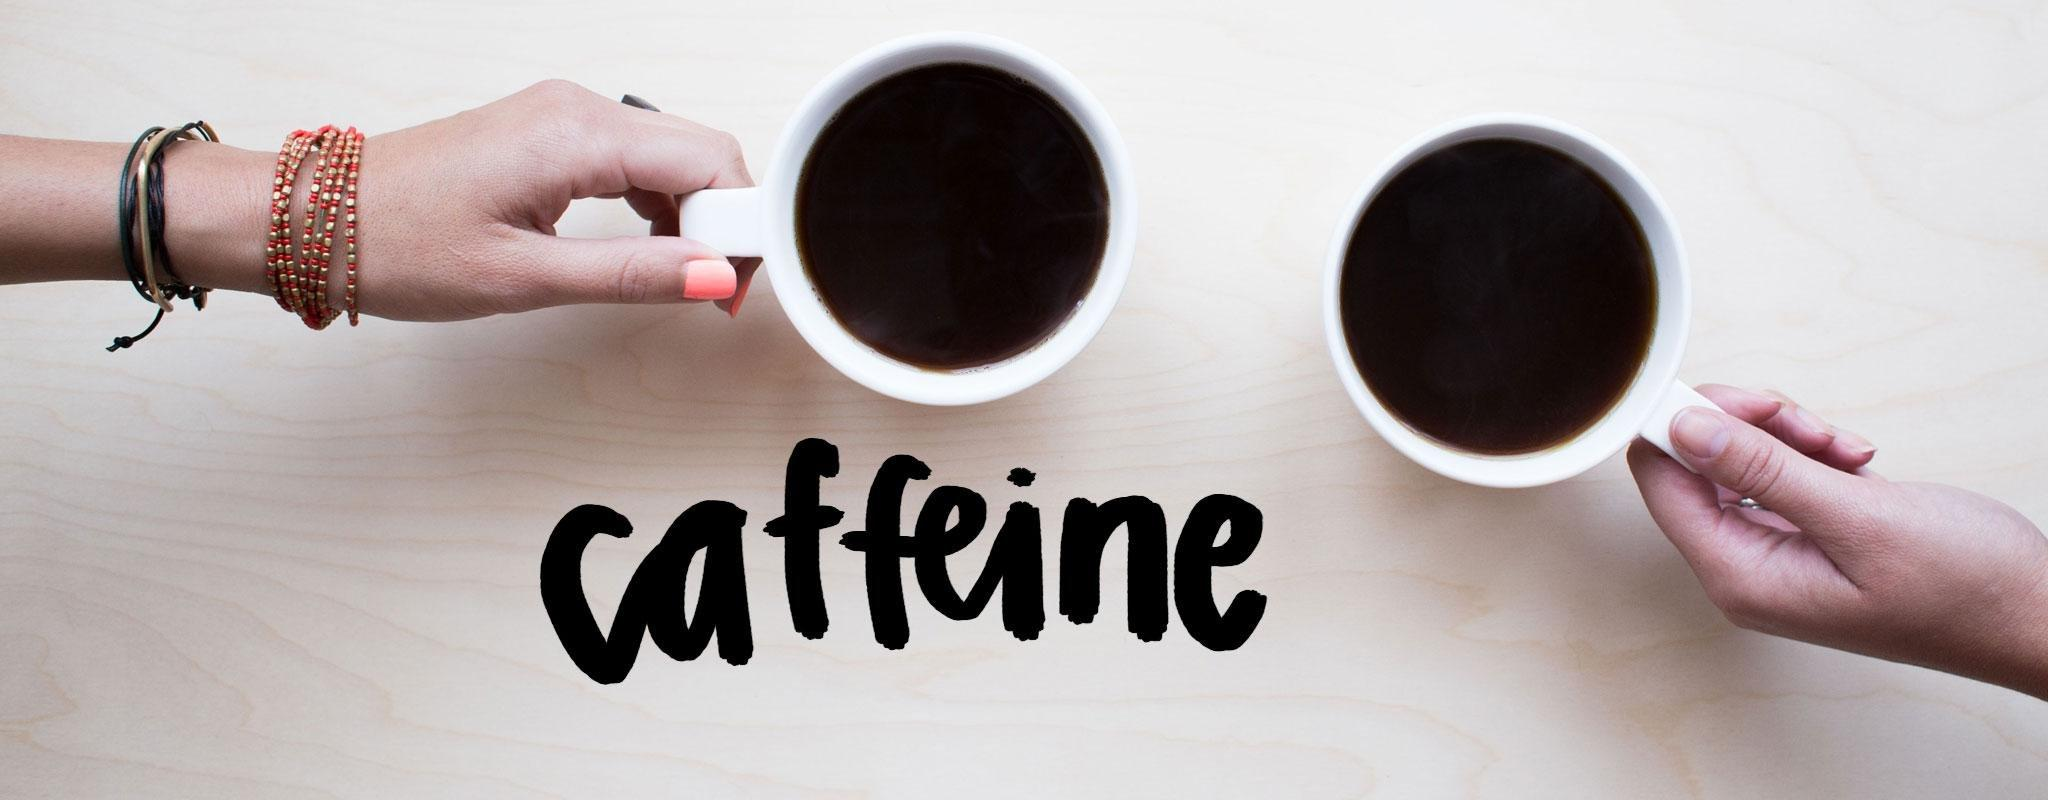 What Coffee Can Diabetics Drink?